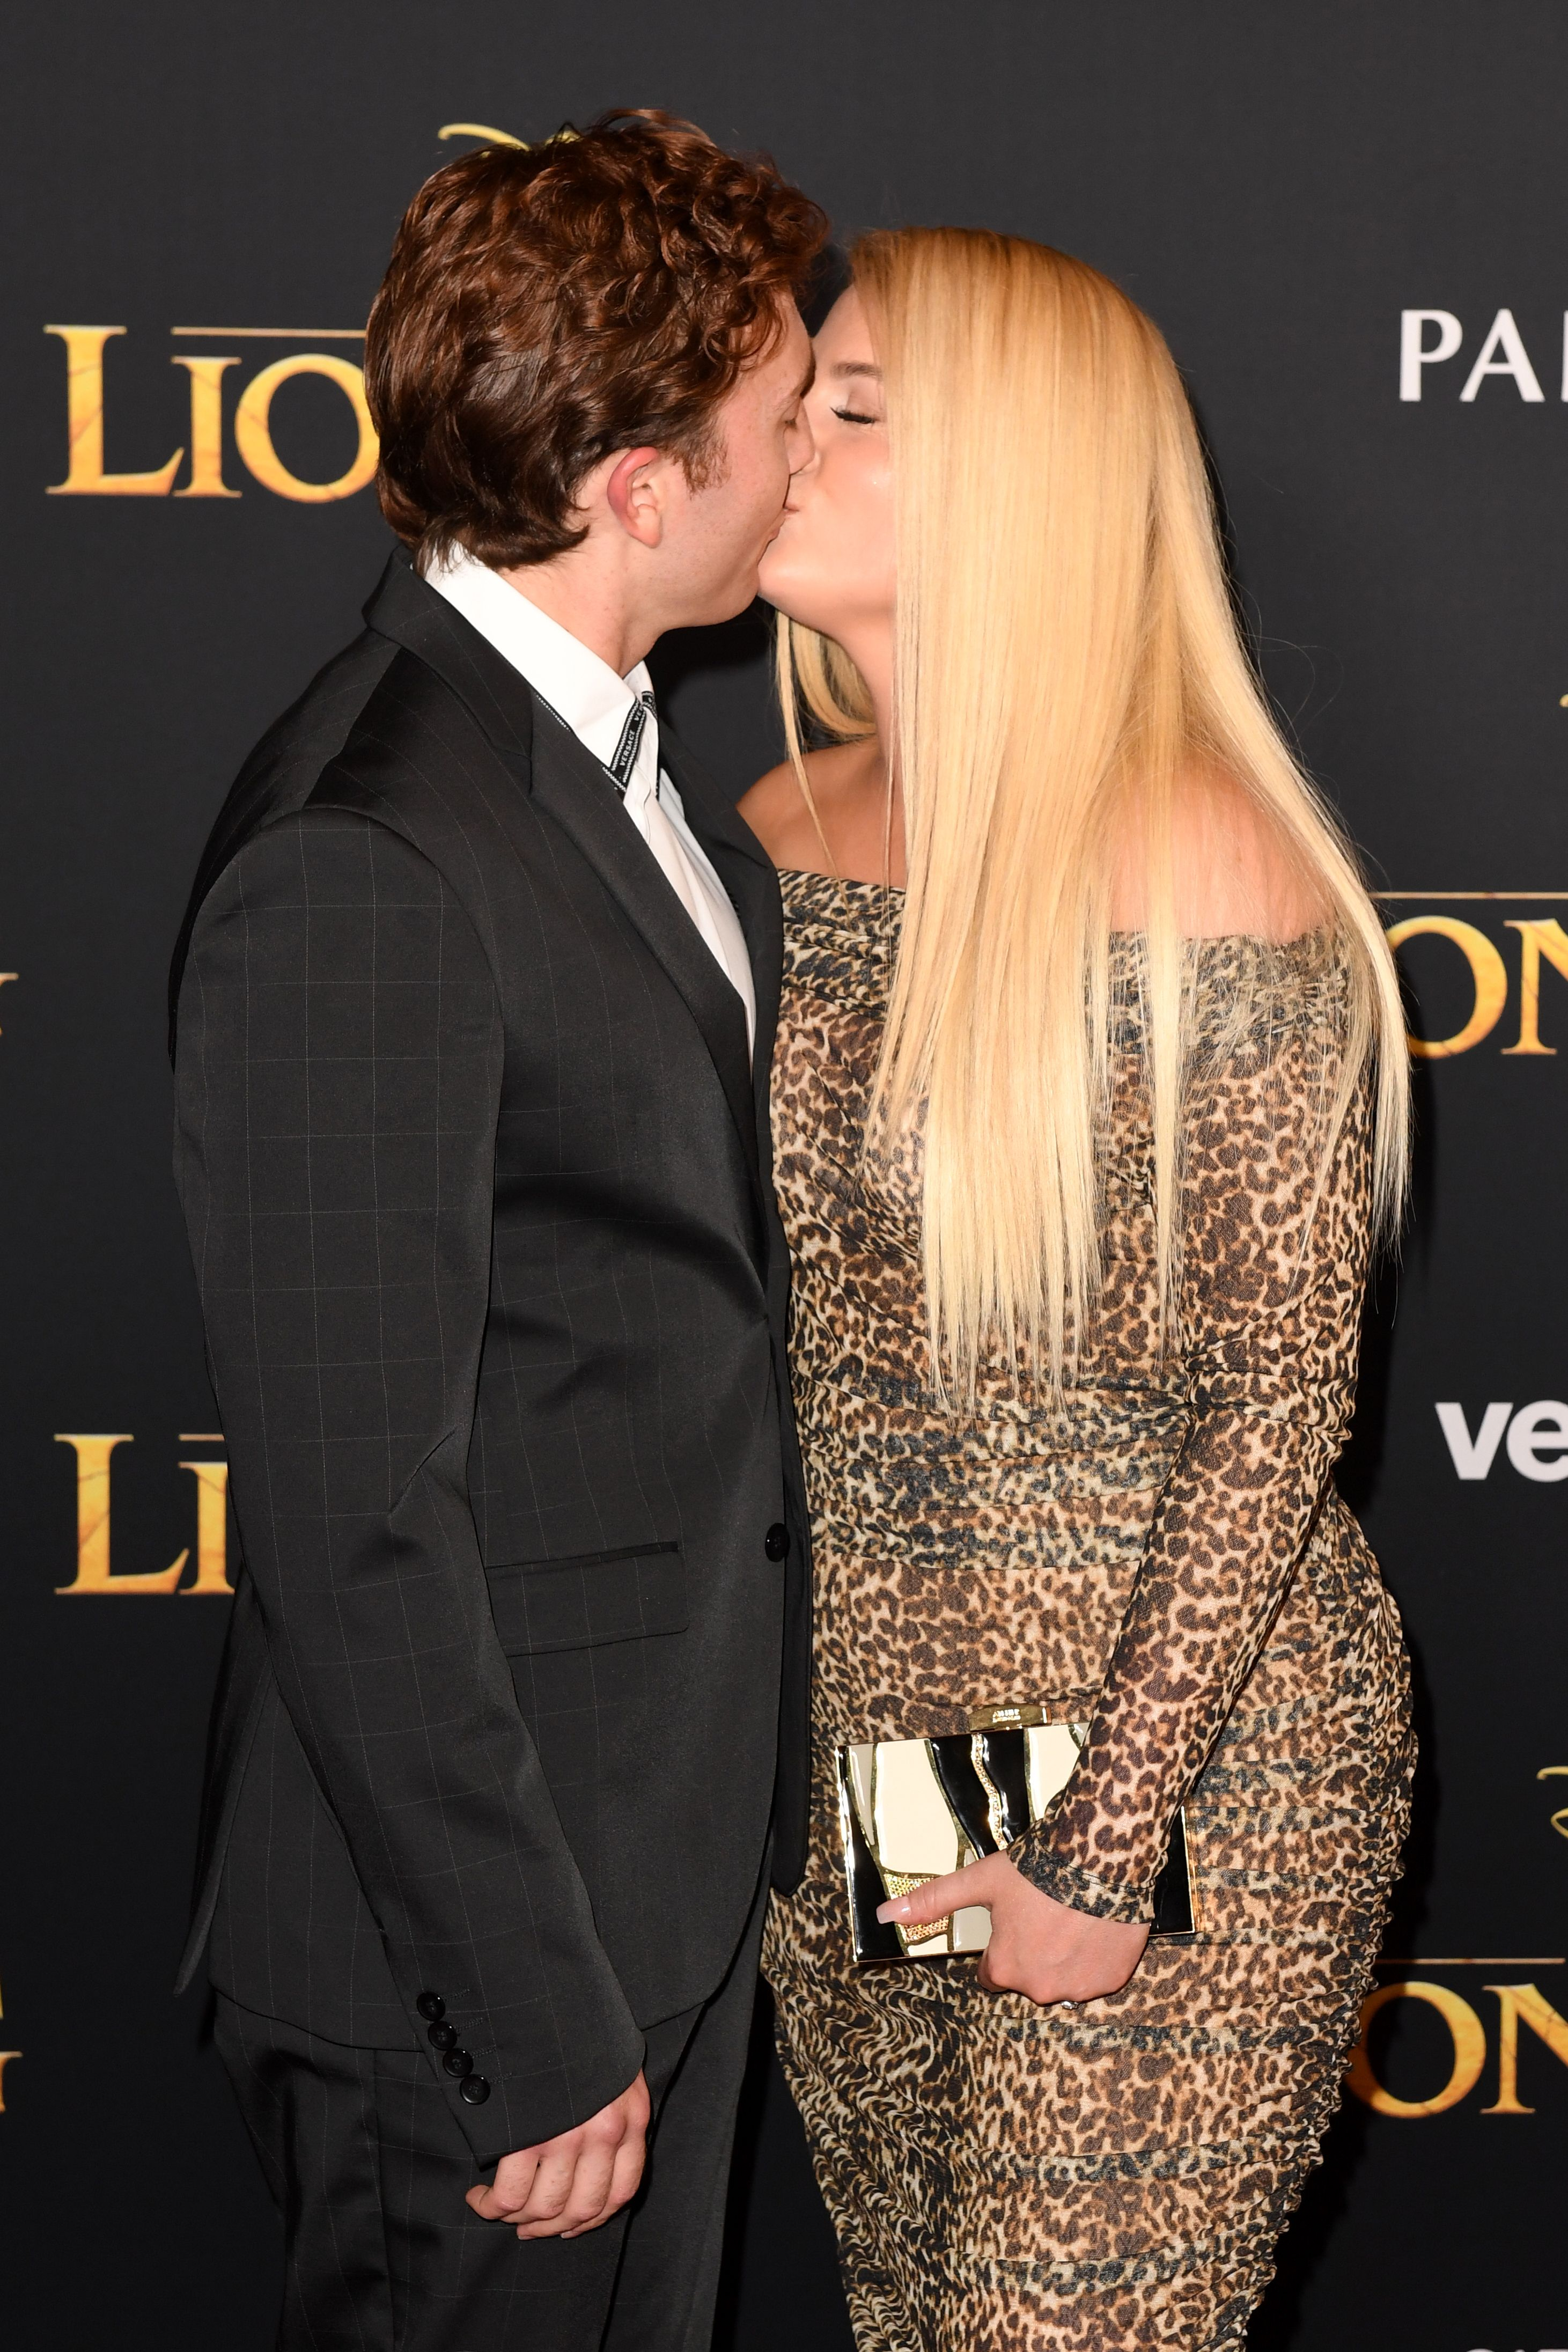 """Meghan Trainor and Daryl Sabara at the world premiere of Disney's """"The Lion King"""" in Hollywood, 2019   Photo: Getty Images"""